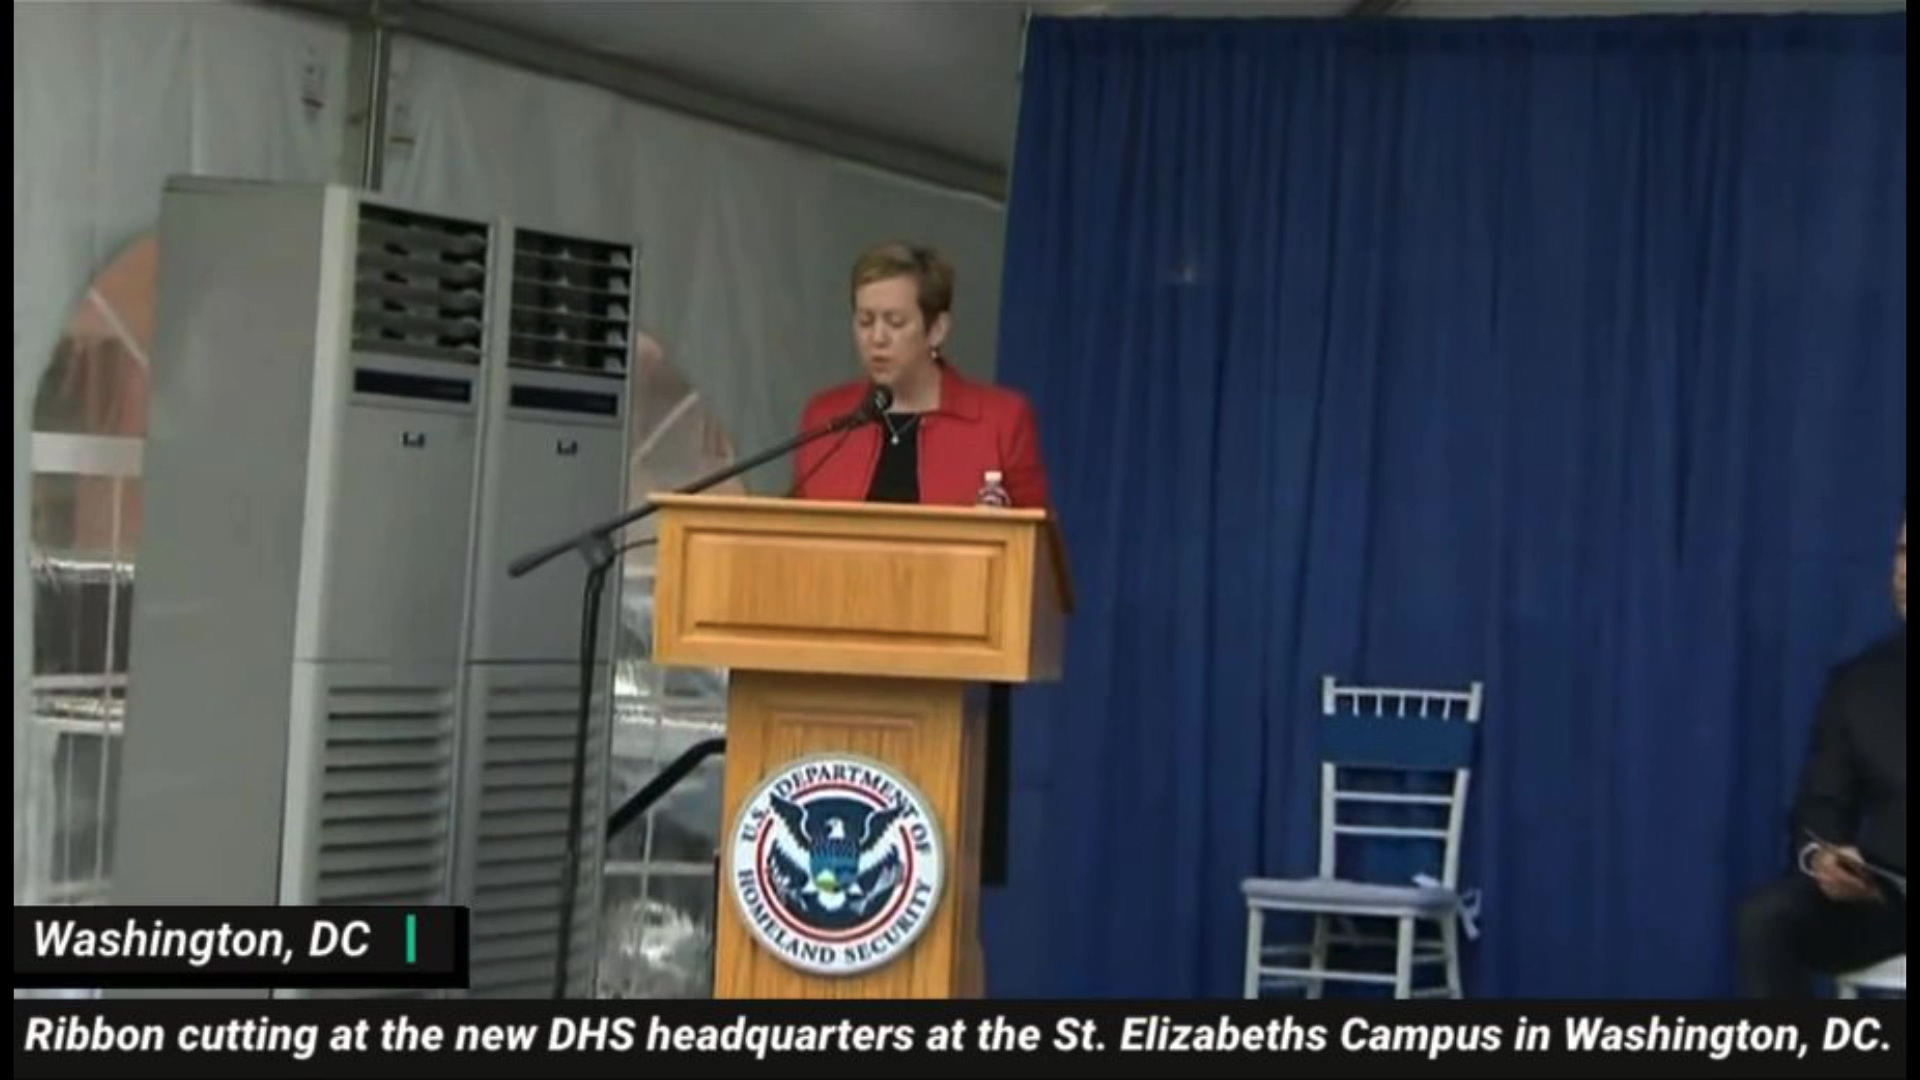 The_Ribbon_Cutting_of_the_Department_of_Homeland_Security_Headquarters_1080p